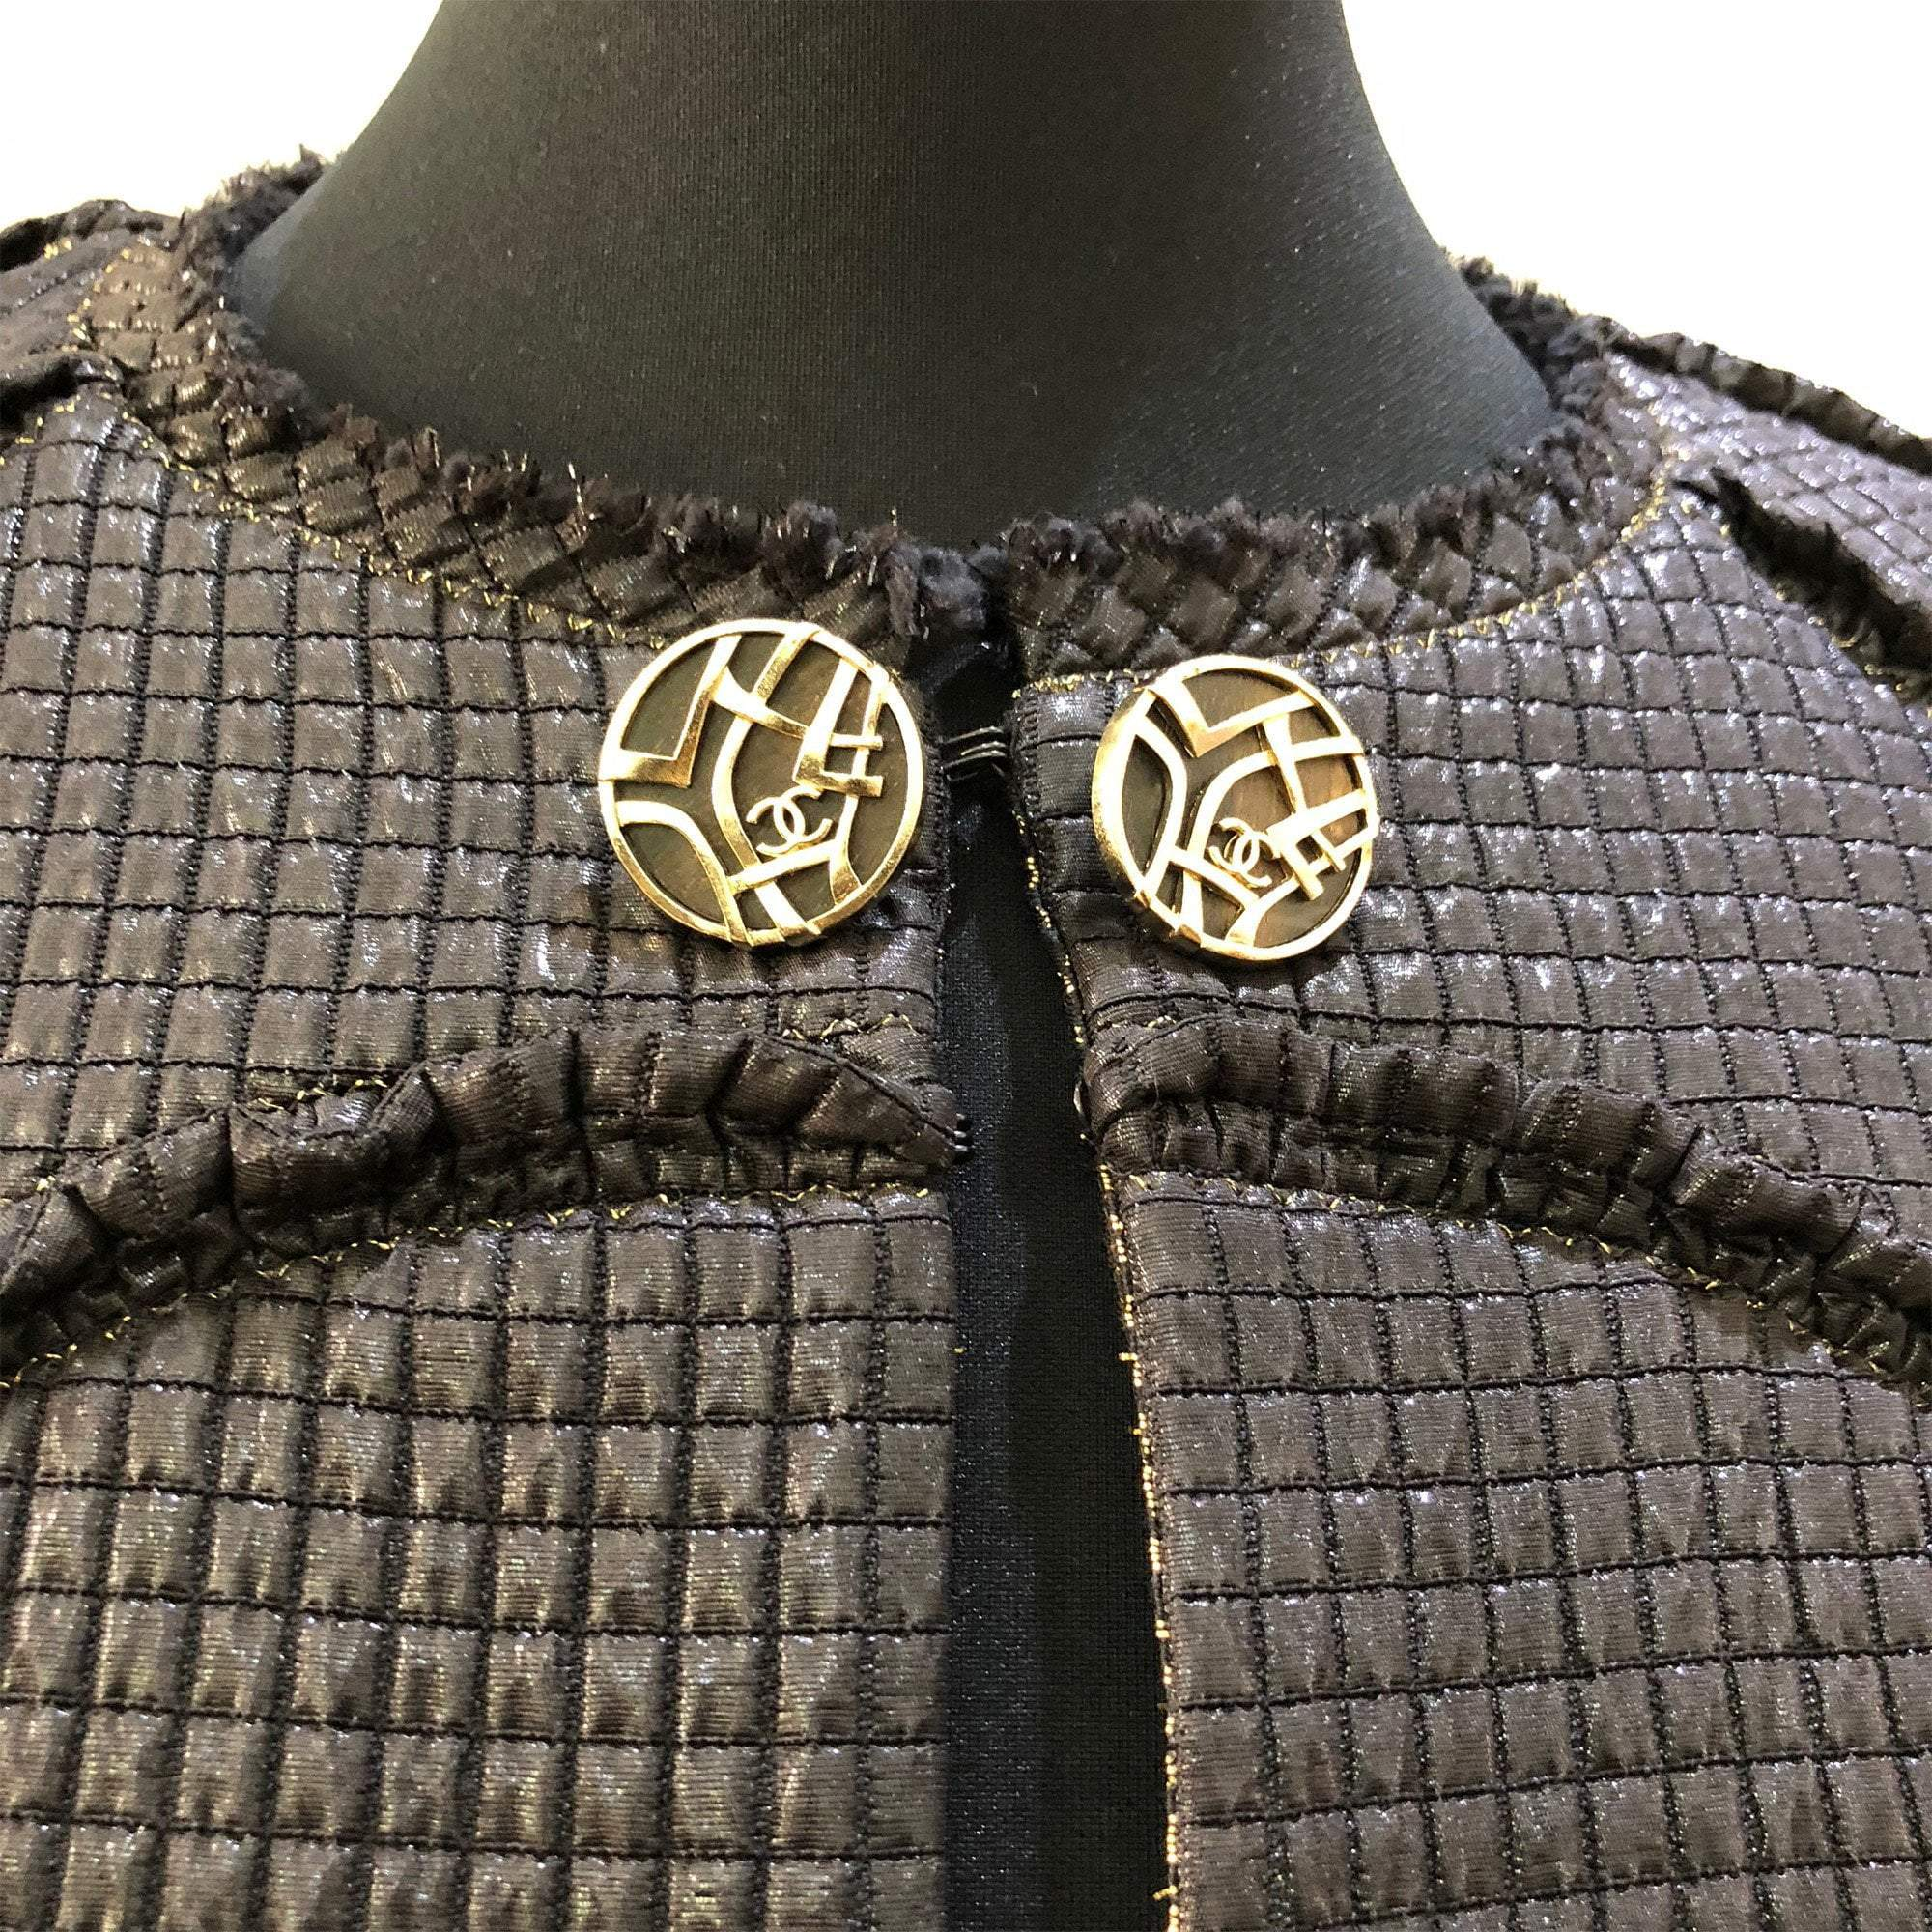 Chanel Black Fabric Jacket